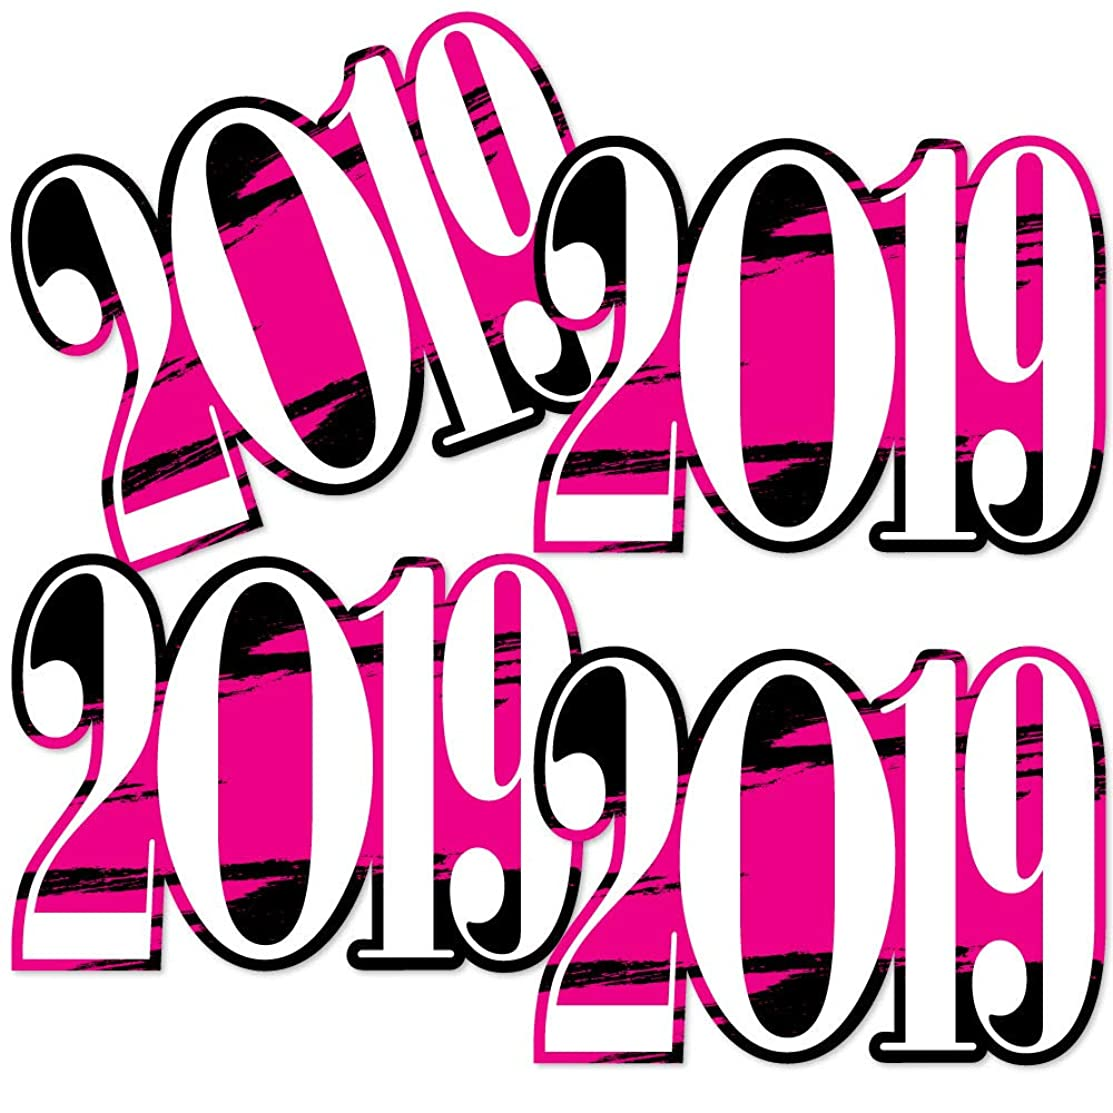 Pink Grad 2019 - Best is Yet to Come - 2019 Decorations DIY Pink Graduation Party Essentials - Set of 20